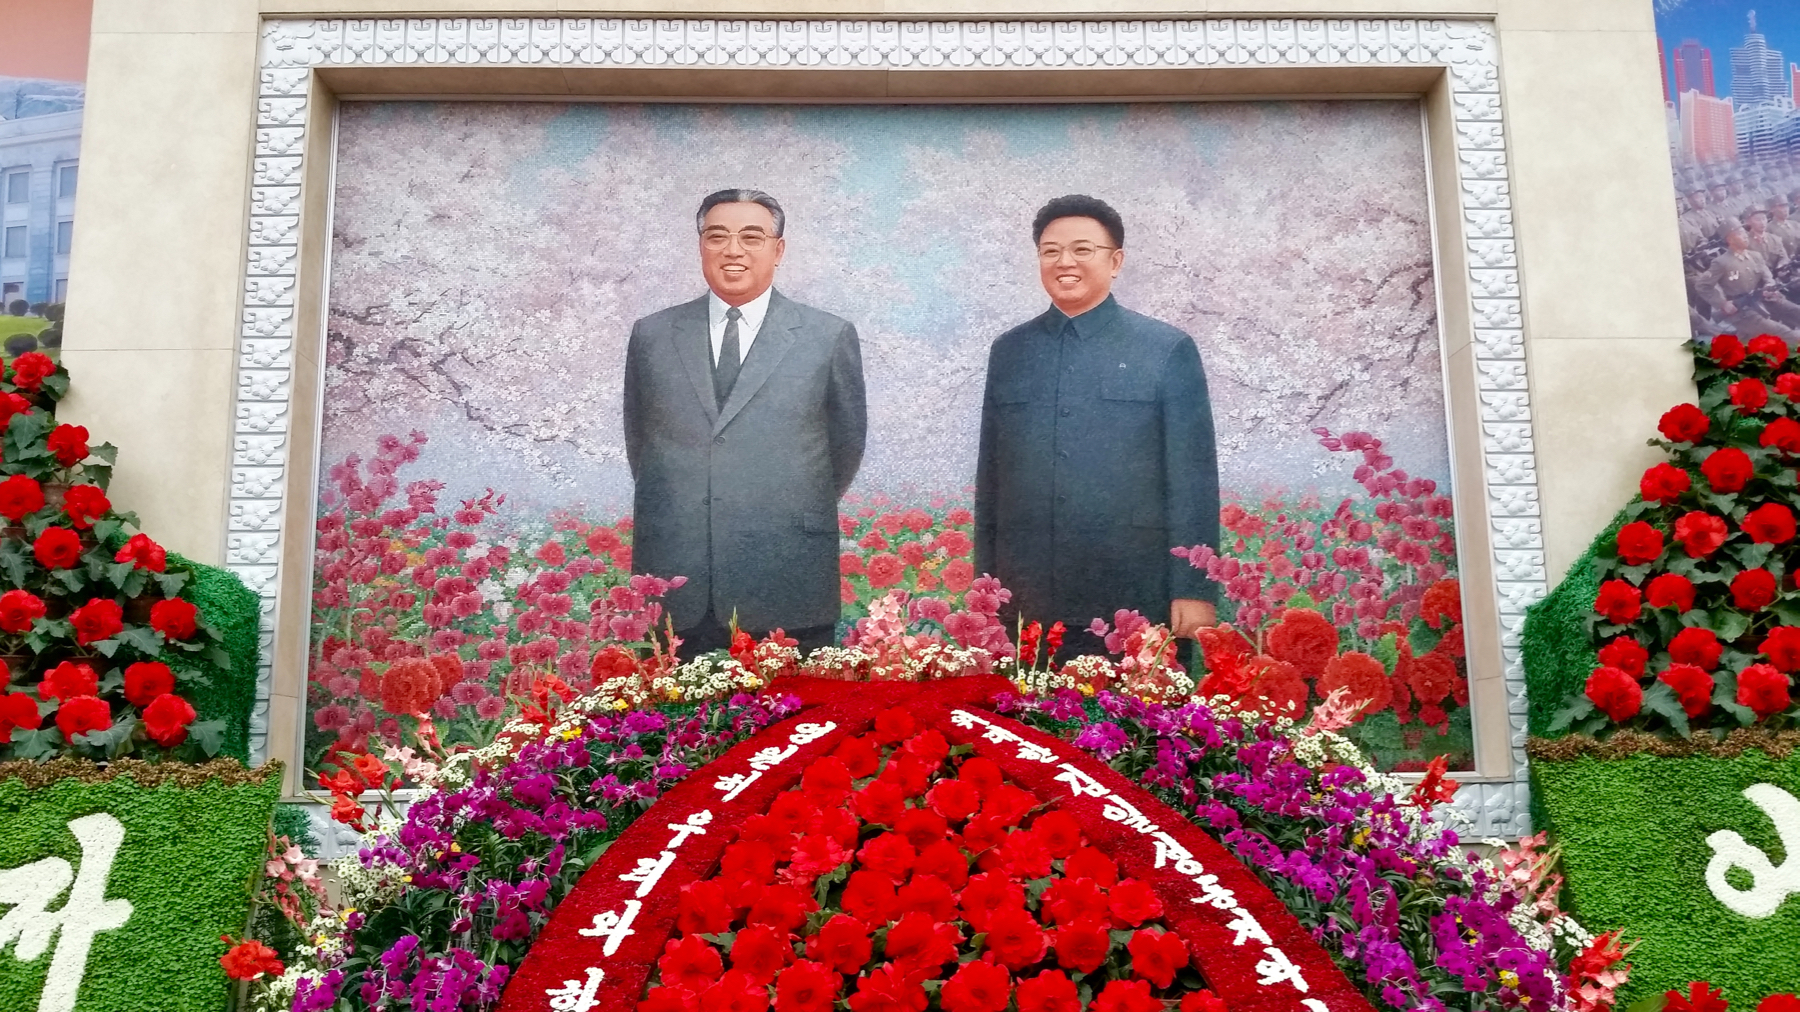 As you enter the exhibit you're greeted by this enormous father-and-son portrait, which I promise you, an image seen time and time again in throughout Pyongyang.